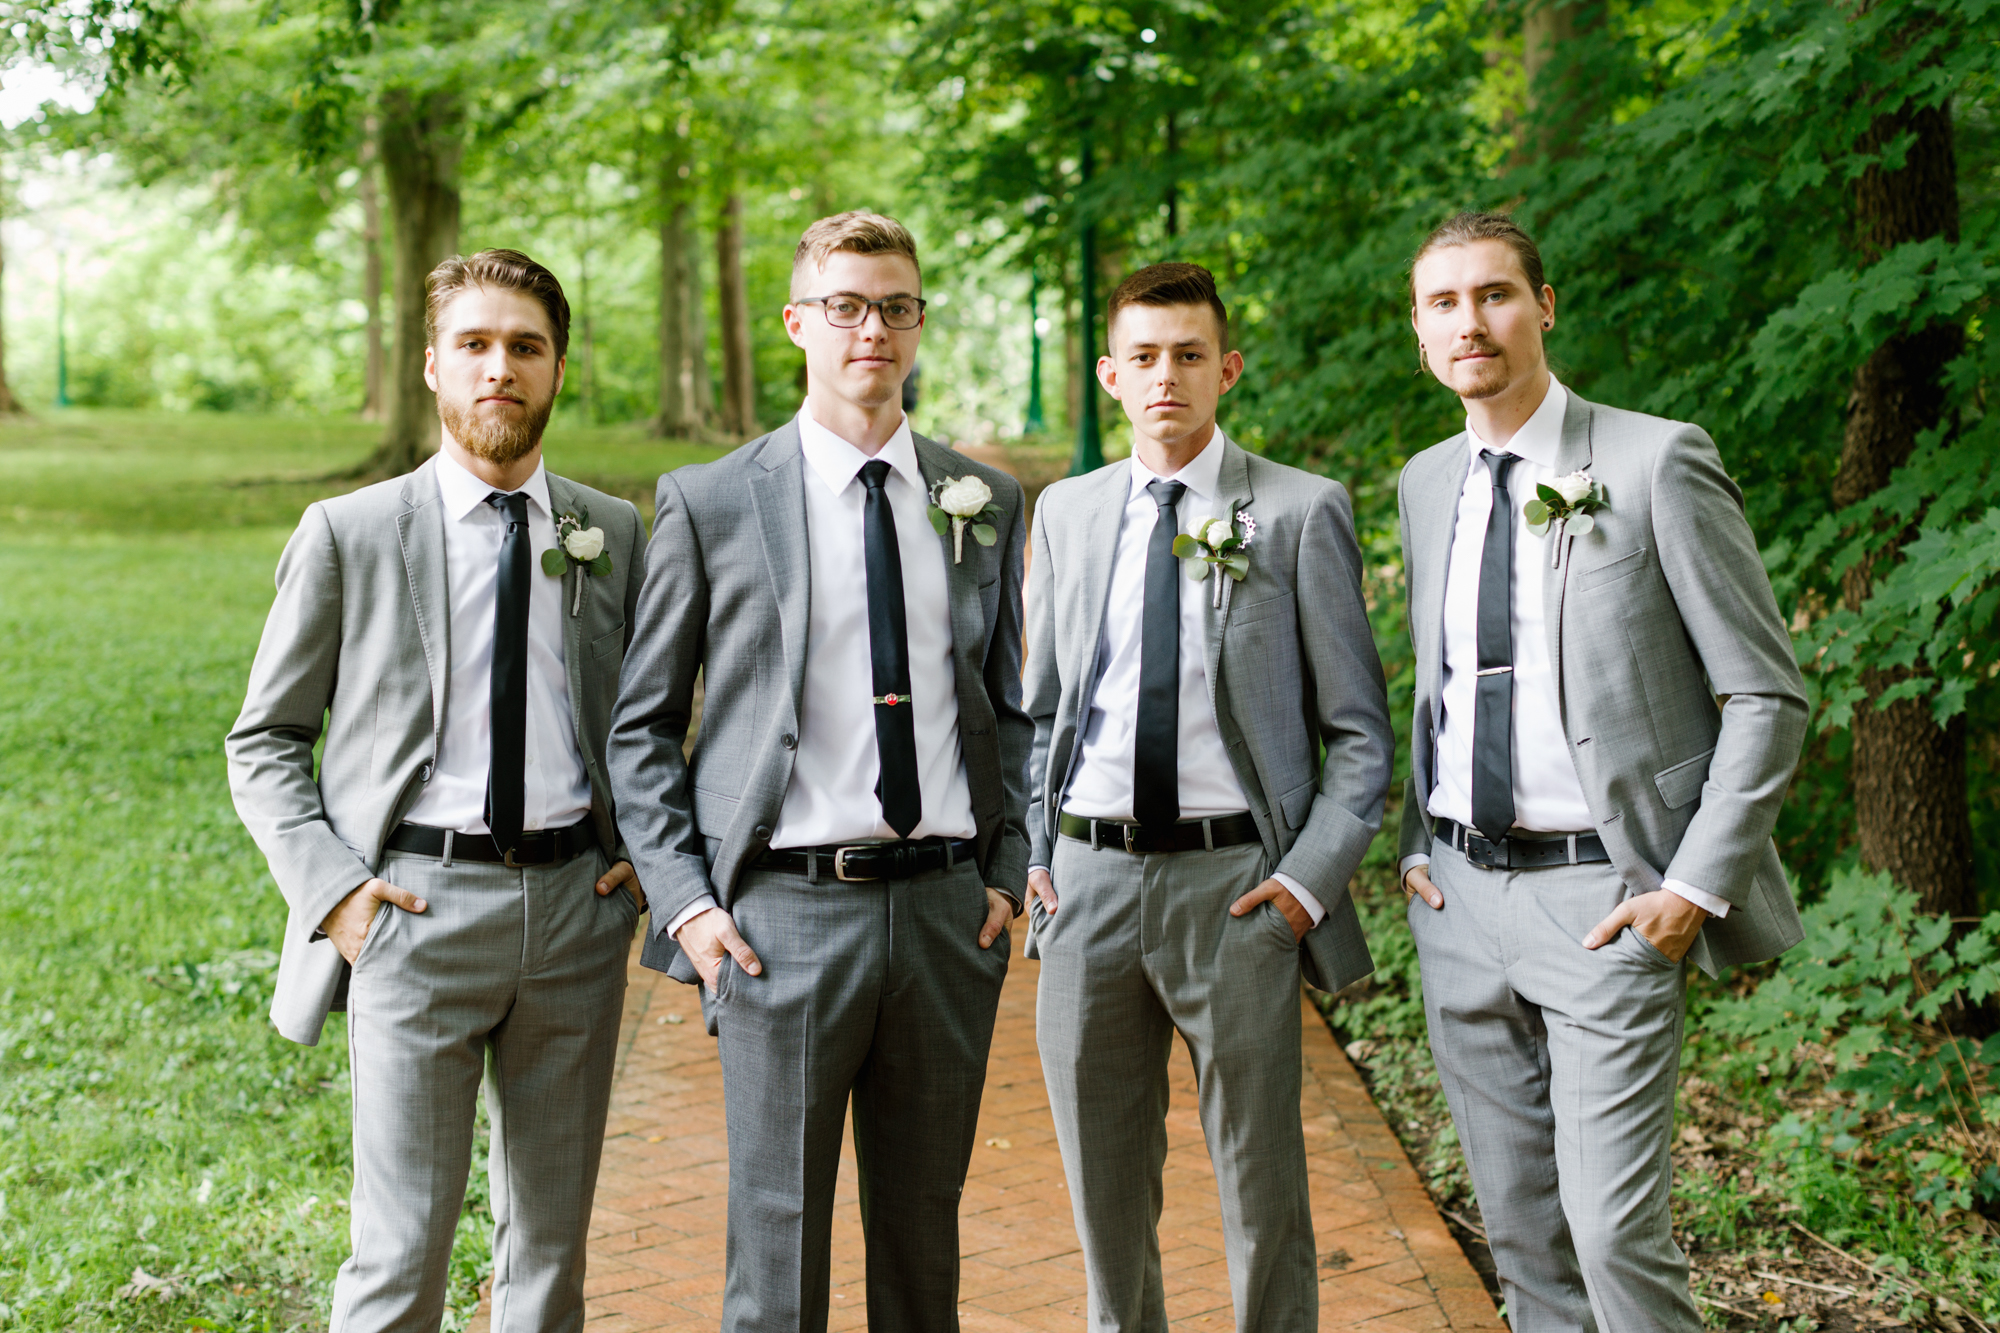 Groomsmen photography before an intimate wedding at the Indiana Memorial Union at Indiana University in Bloomington, Indiana.